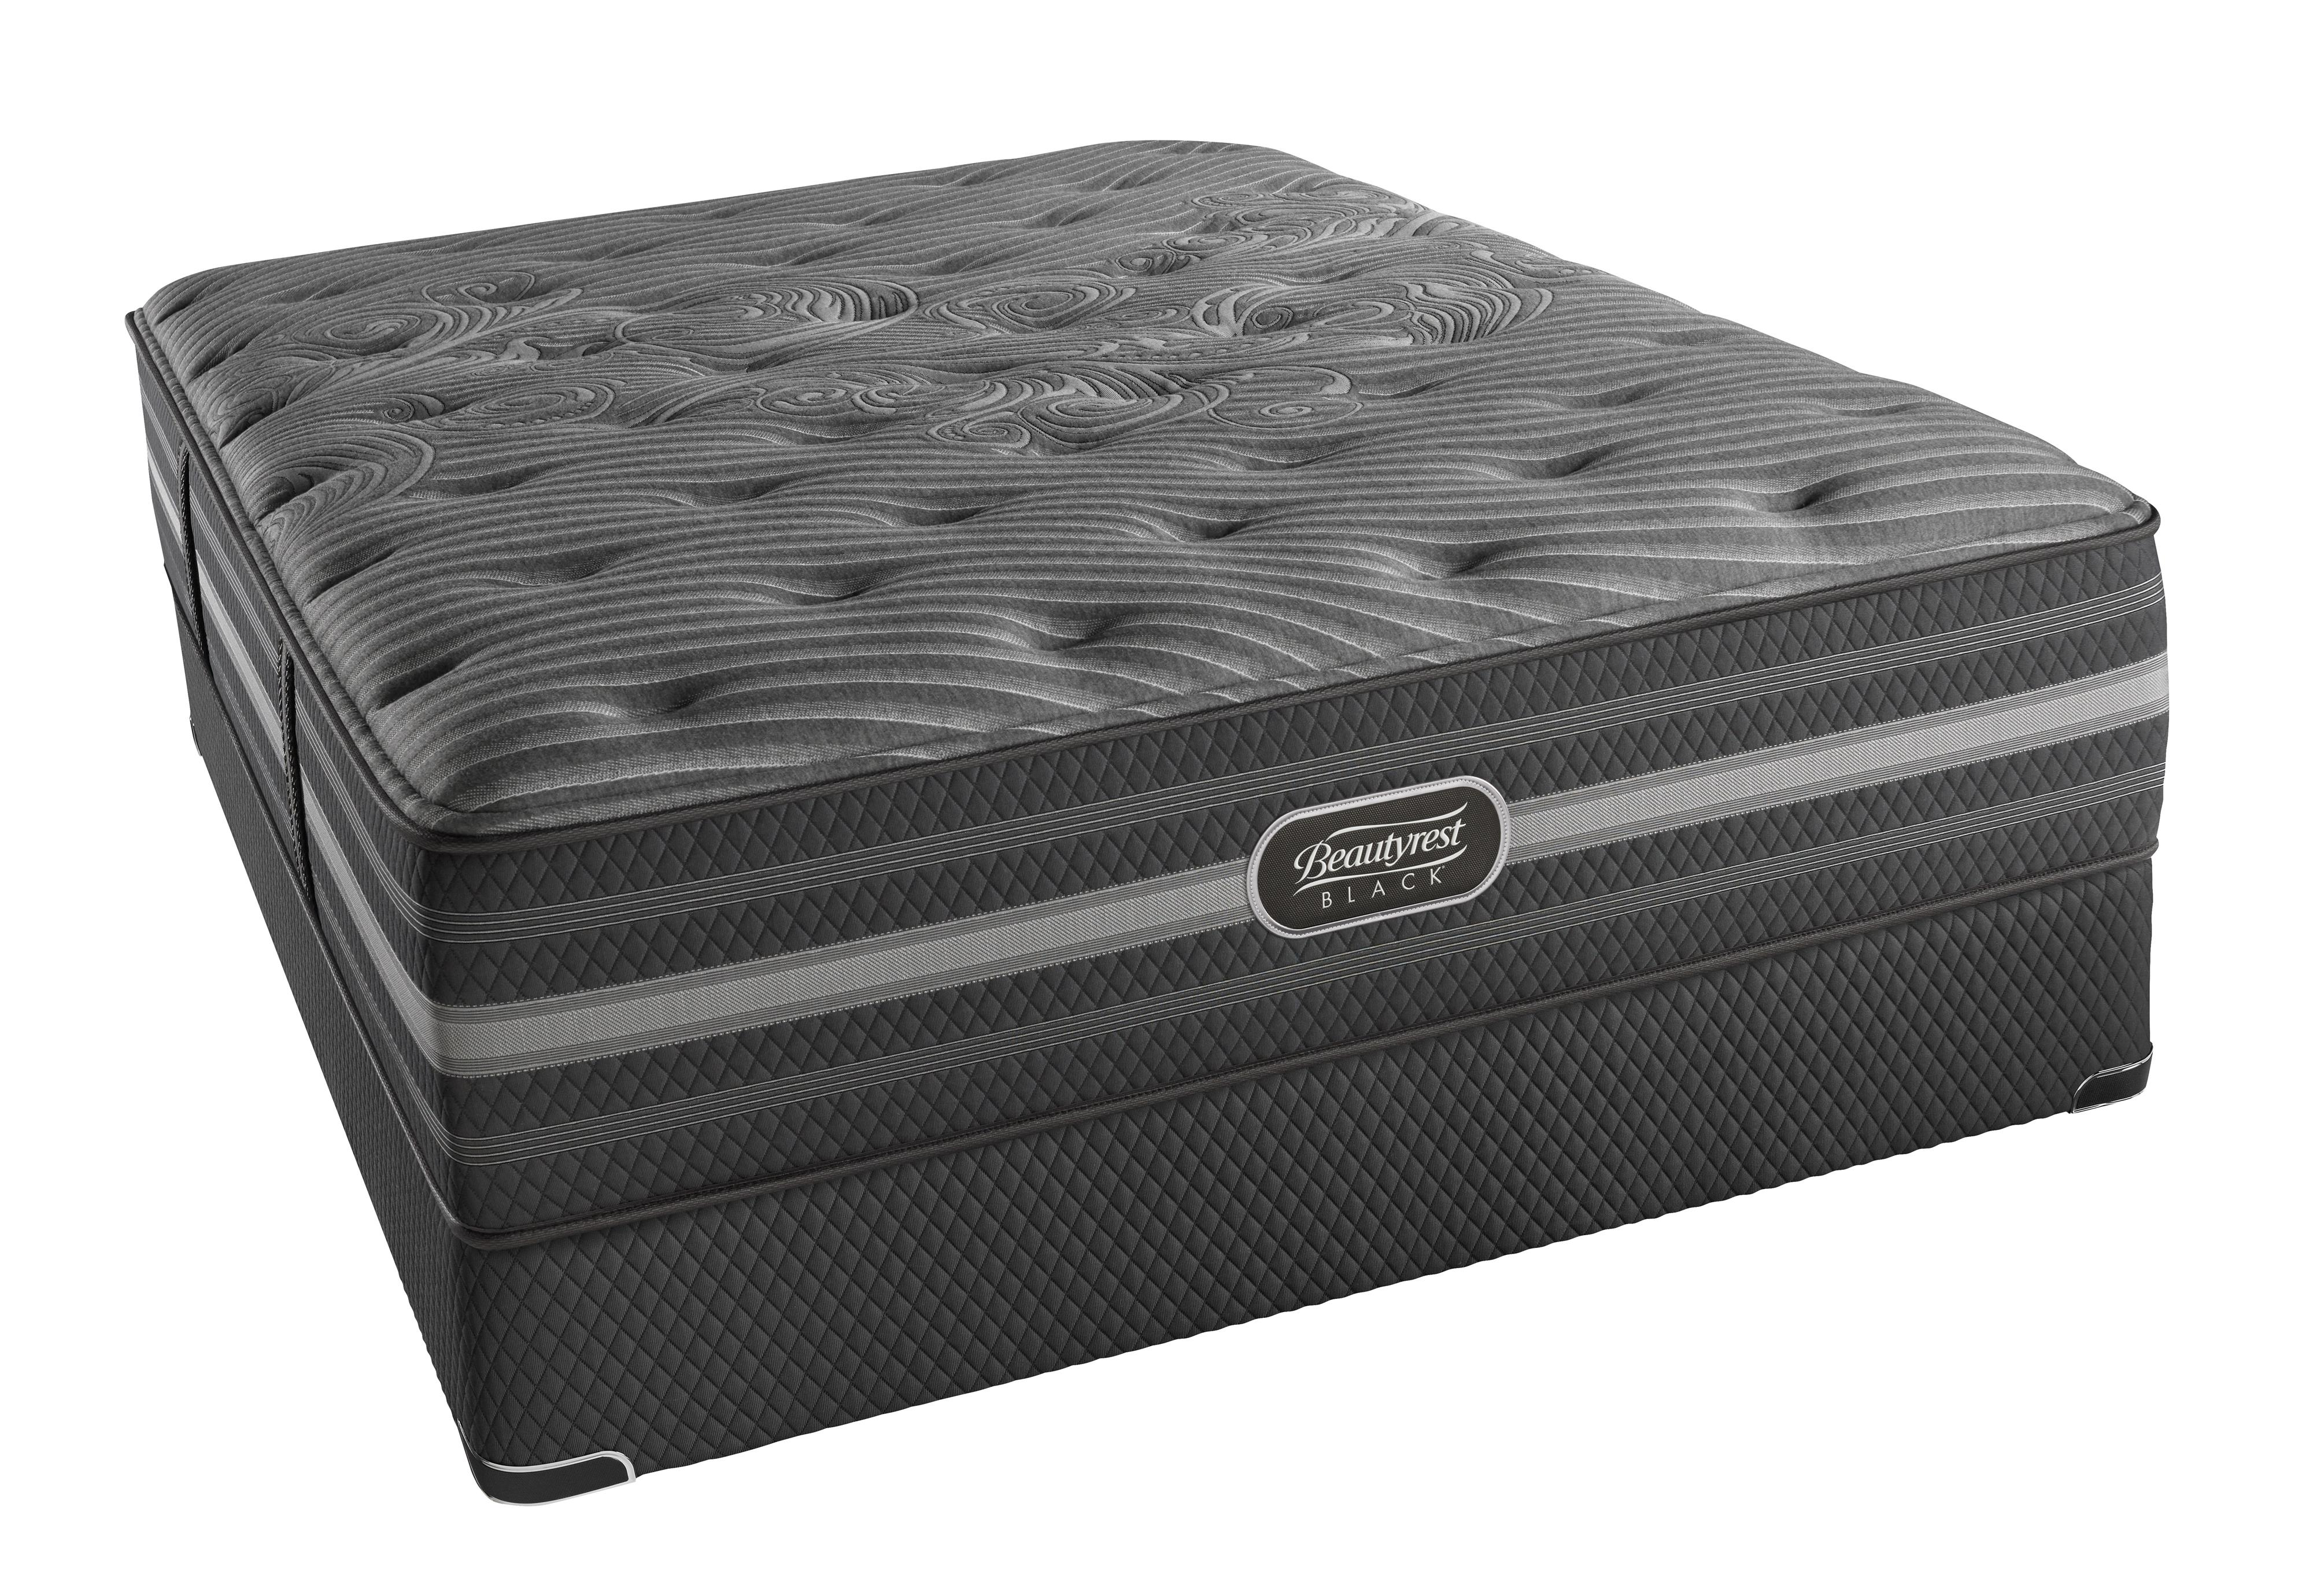 Simmons BR Black Mariela Queen Luxury Firm Mattress Set, HP - Item Number: BRBLUXURYFM-Q+700730112-5050